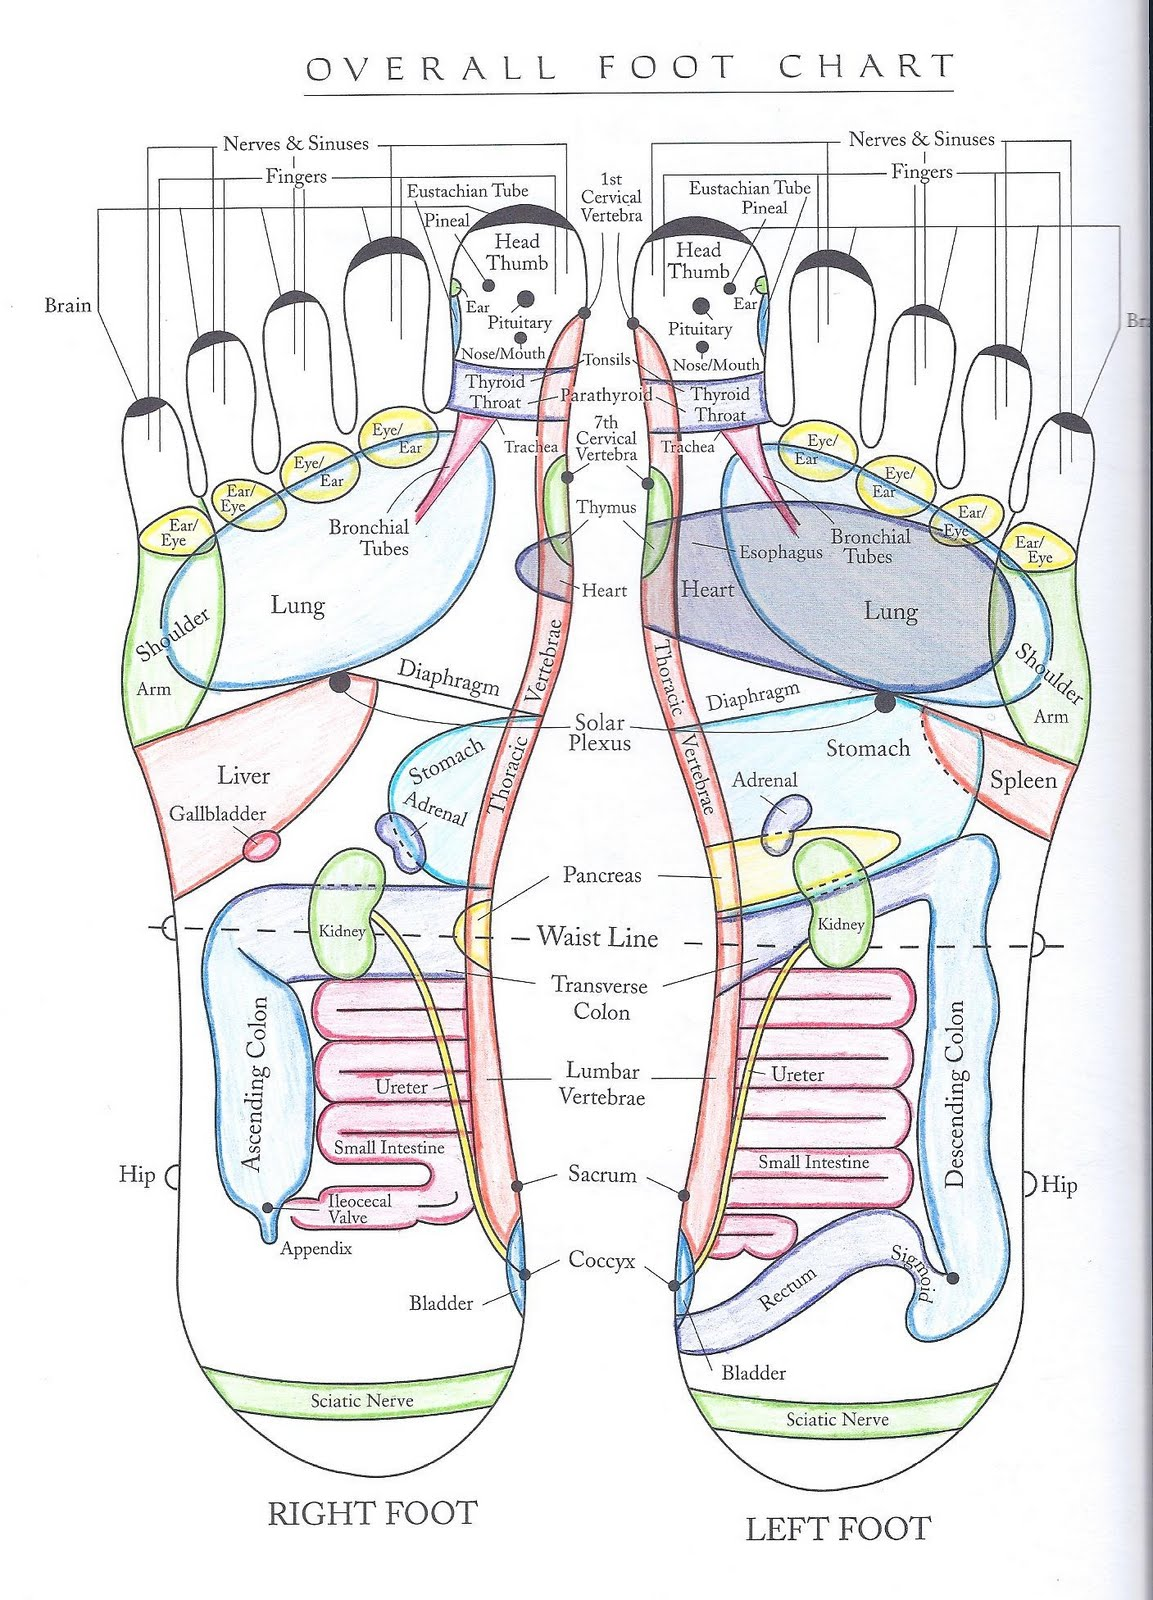 if you have not tried reflexology i highly recommend it simply because it feels amazing the other benefits speak for themselves